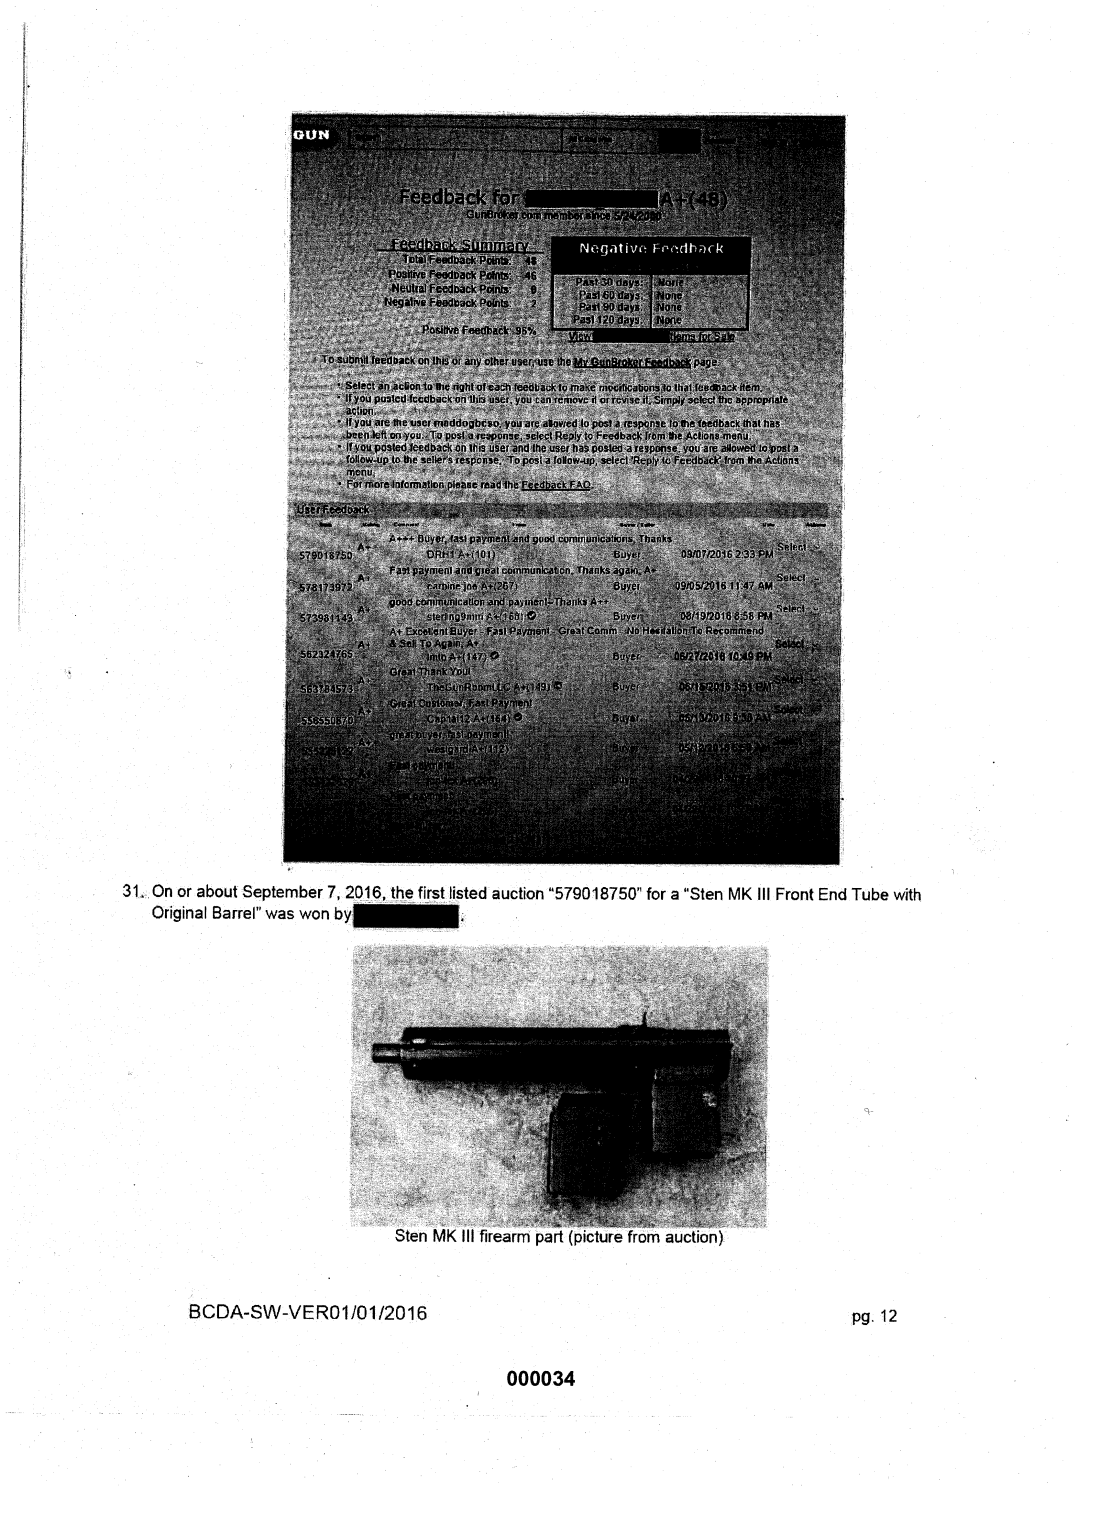 Statement of probable cause page 8